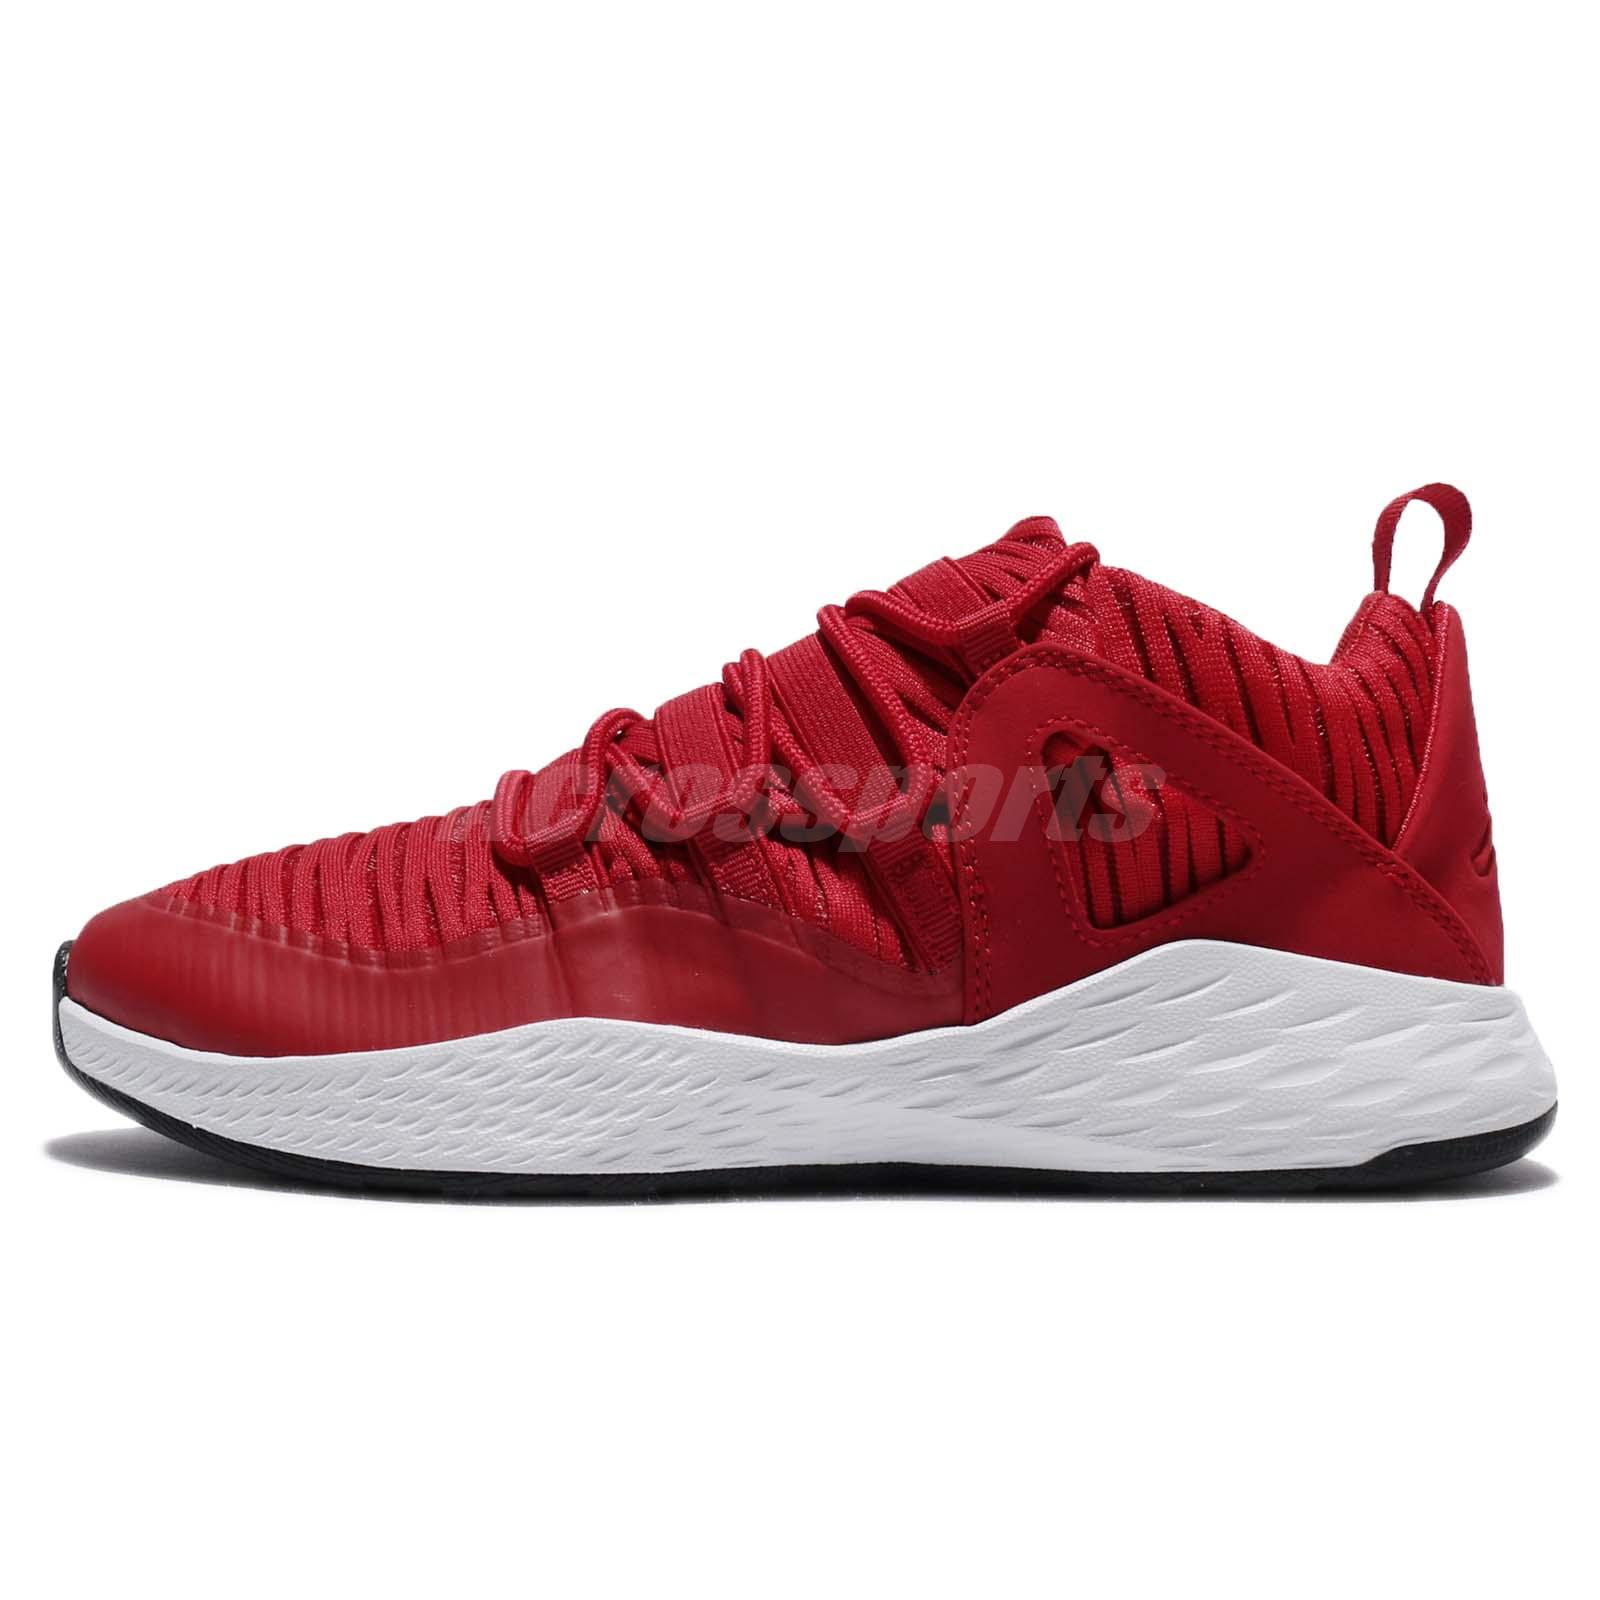 ad7888f3b2022d ... Nike Jordan Formula 23 Low BG Gym Red Kids Women Casual Shoes Sneaker  919725-602 ...